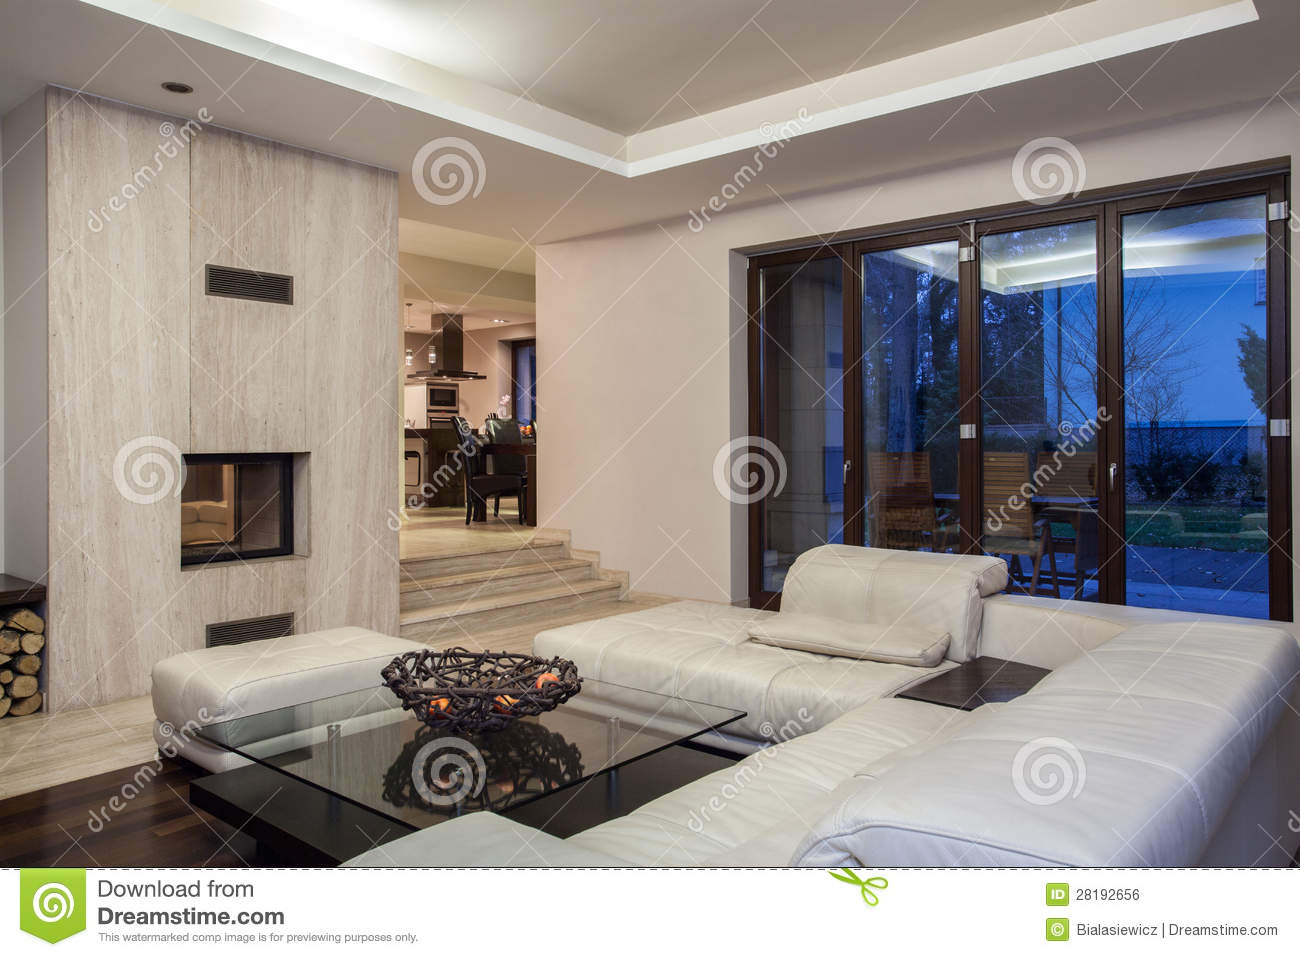 travertine house - spacious living room royalty free stock image